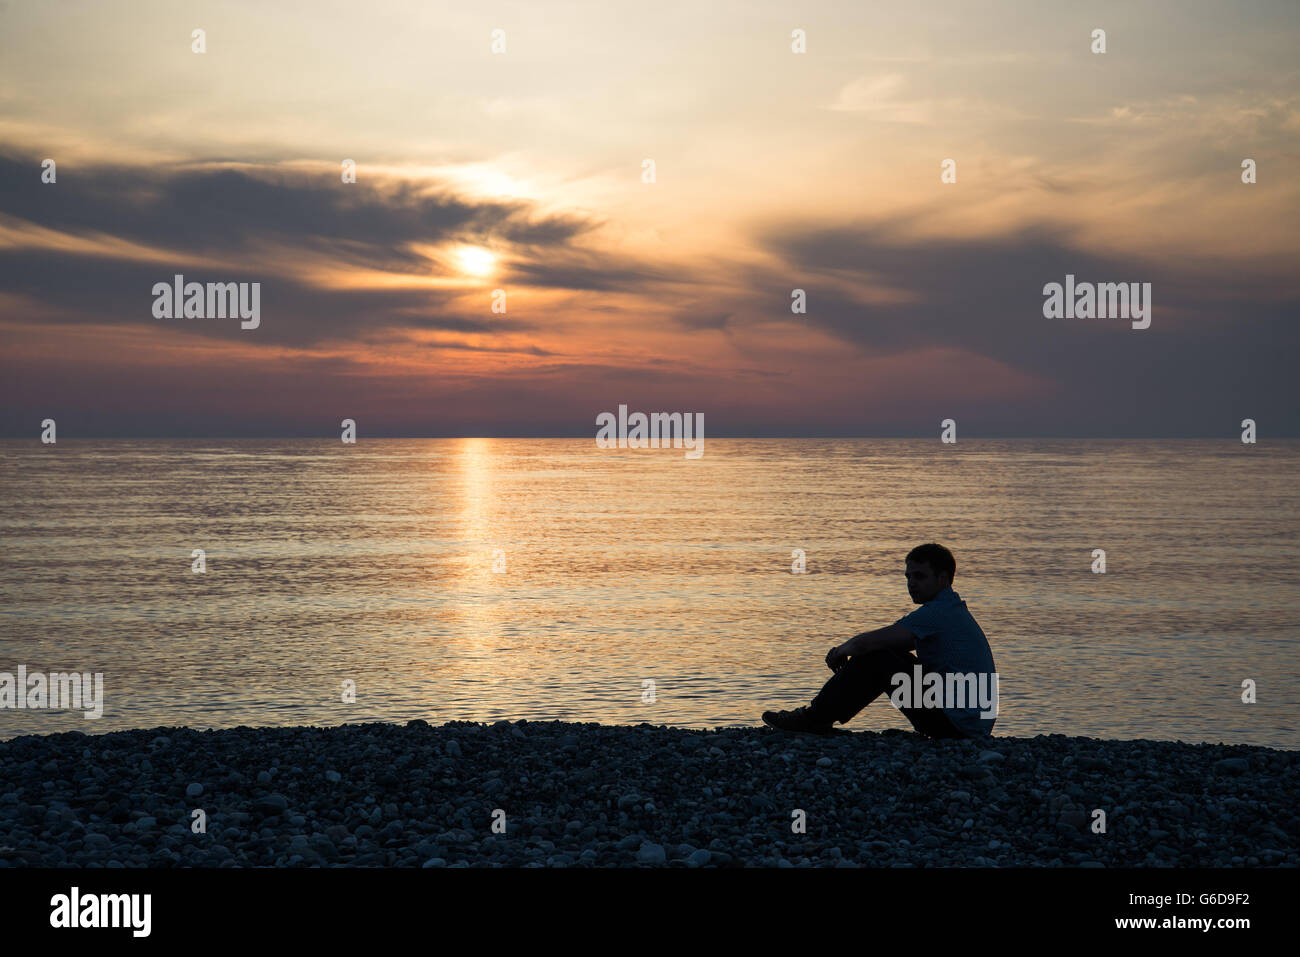 Sad man silhouette worried on the beach at sunset with the sun in the background - Stock Image